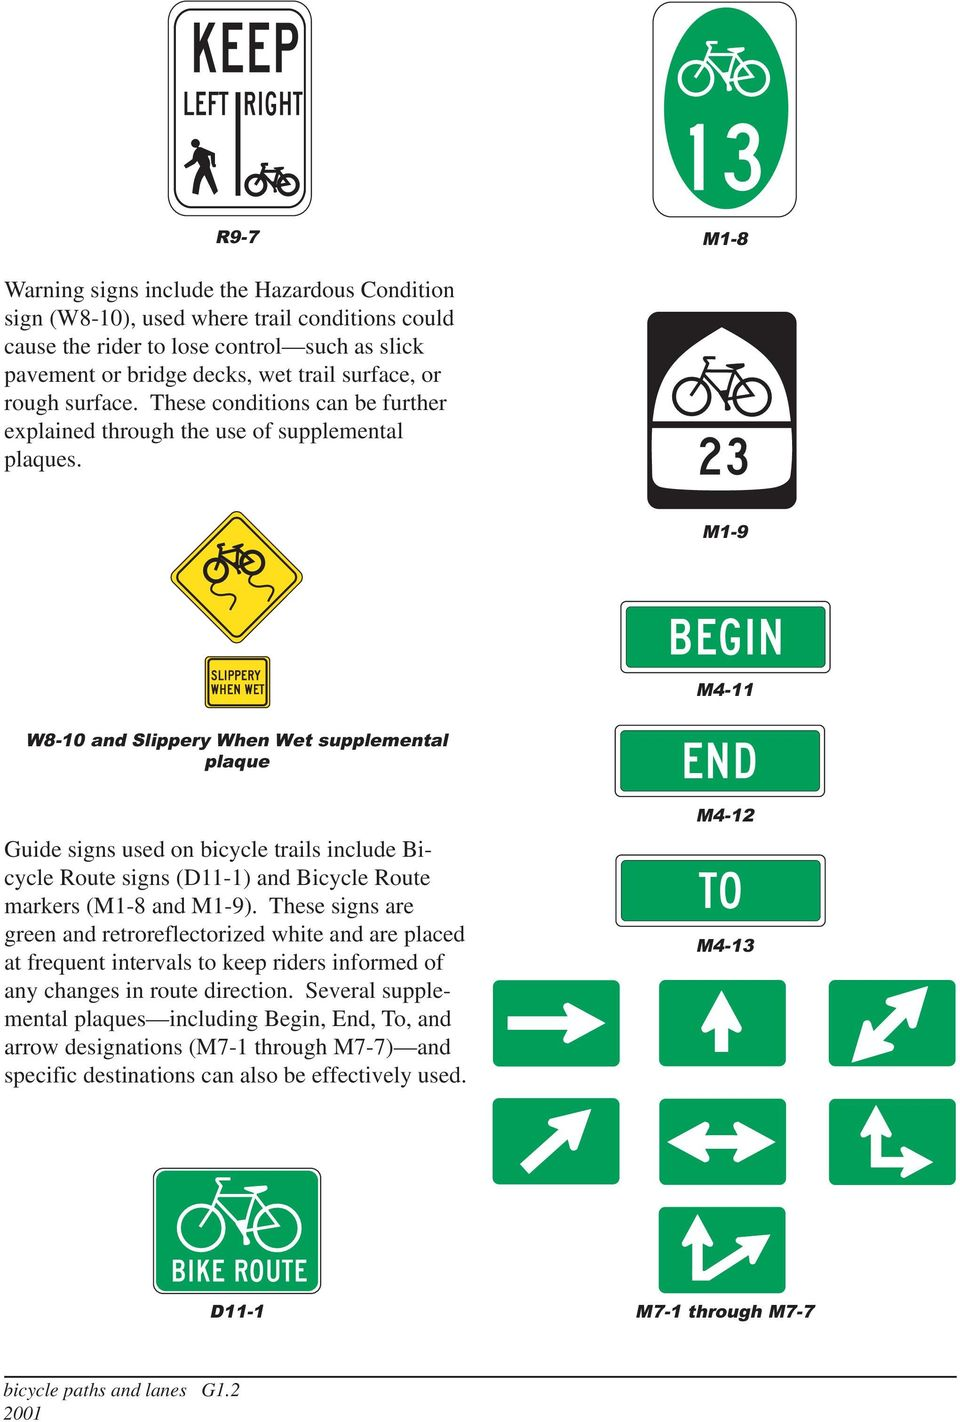 M1-9 M4-11 W8-10 and Slippery When Wet supplemental plaque Guide signs used on bicycle trails include Bicycle Route signs (D11-1) and Bicycle Route markers (M1-8 and M1-9).